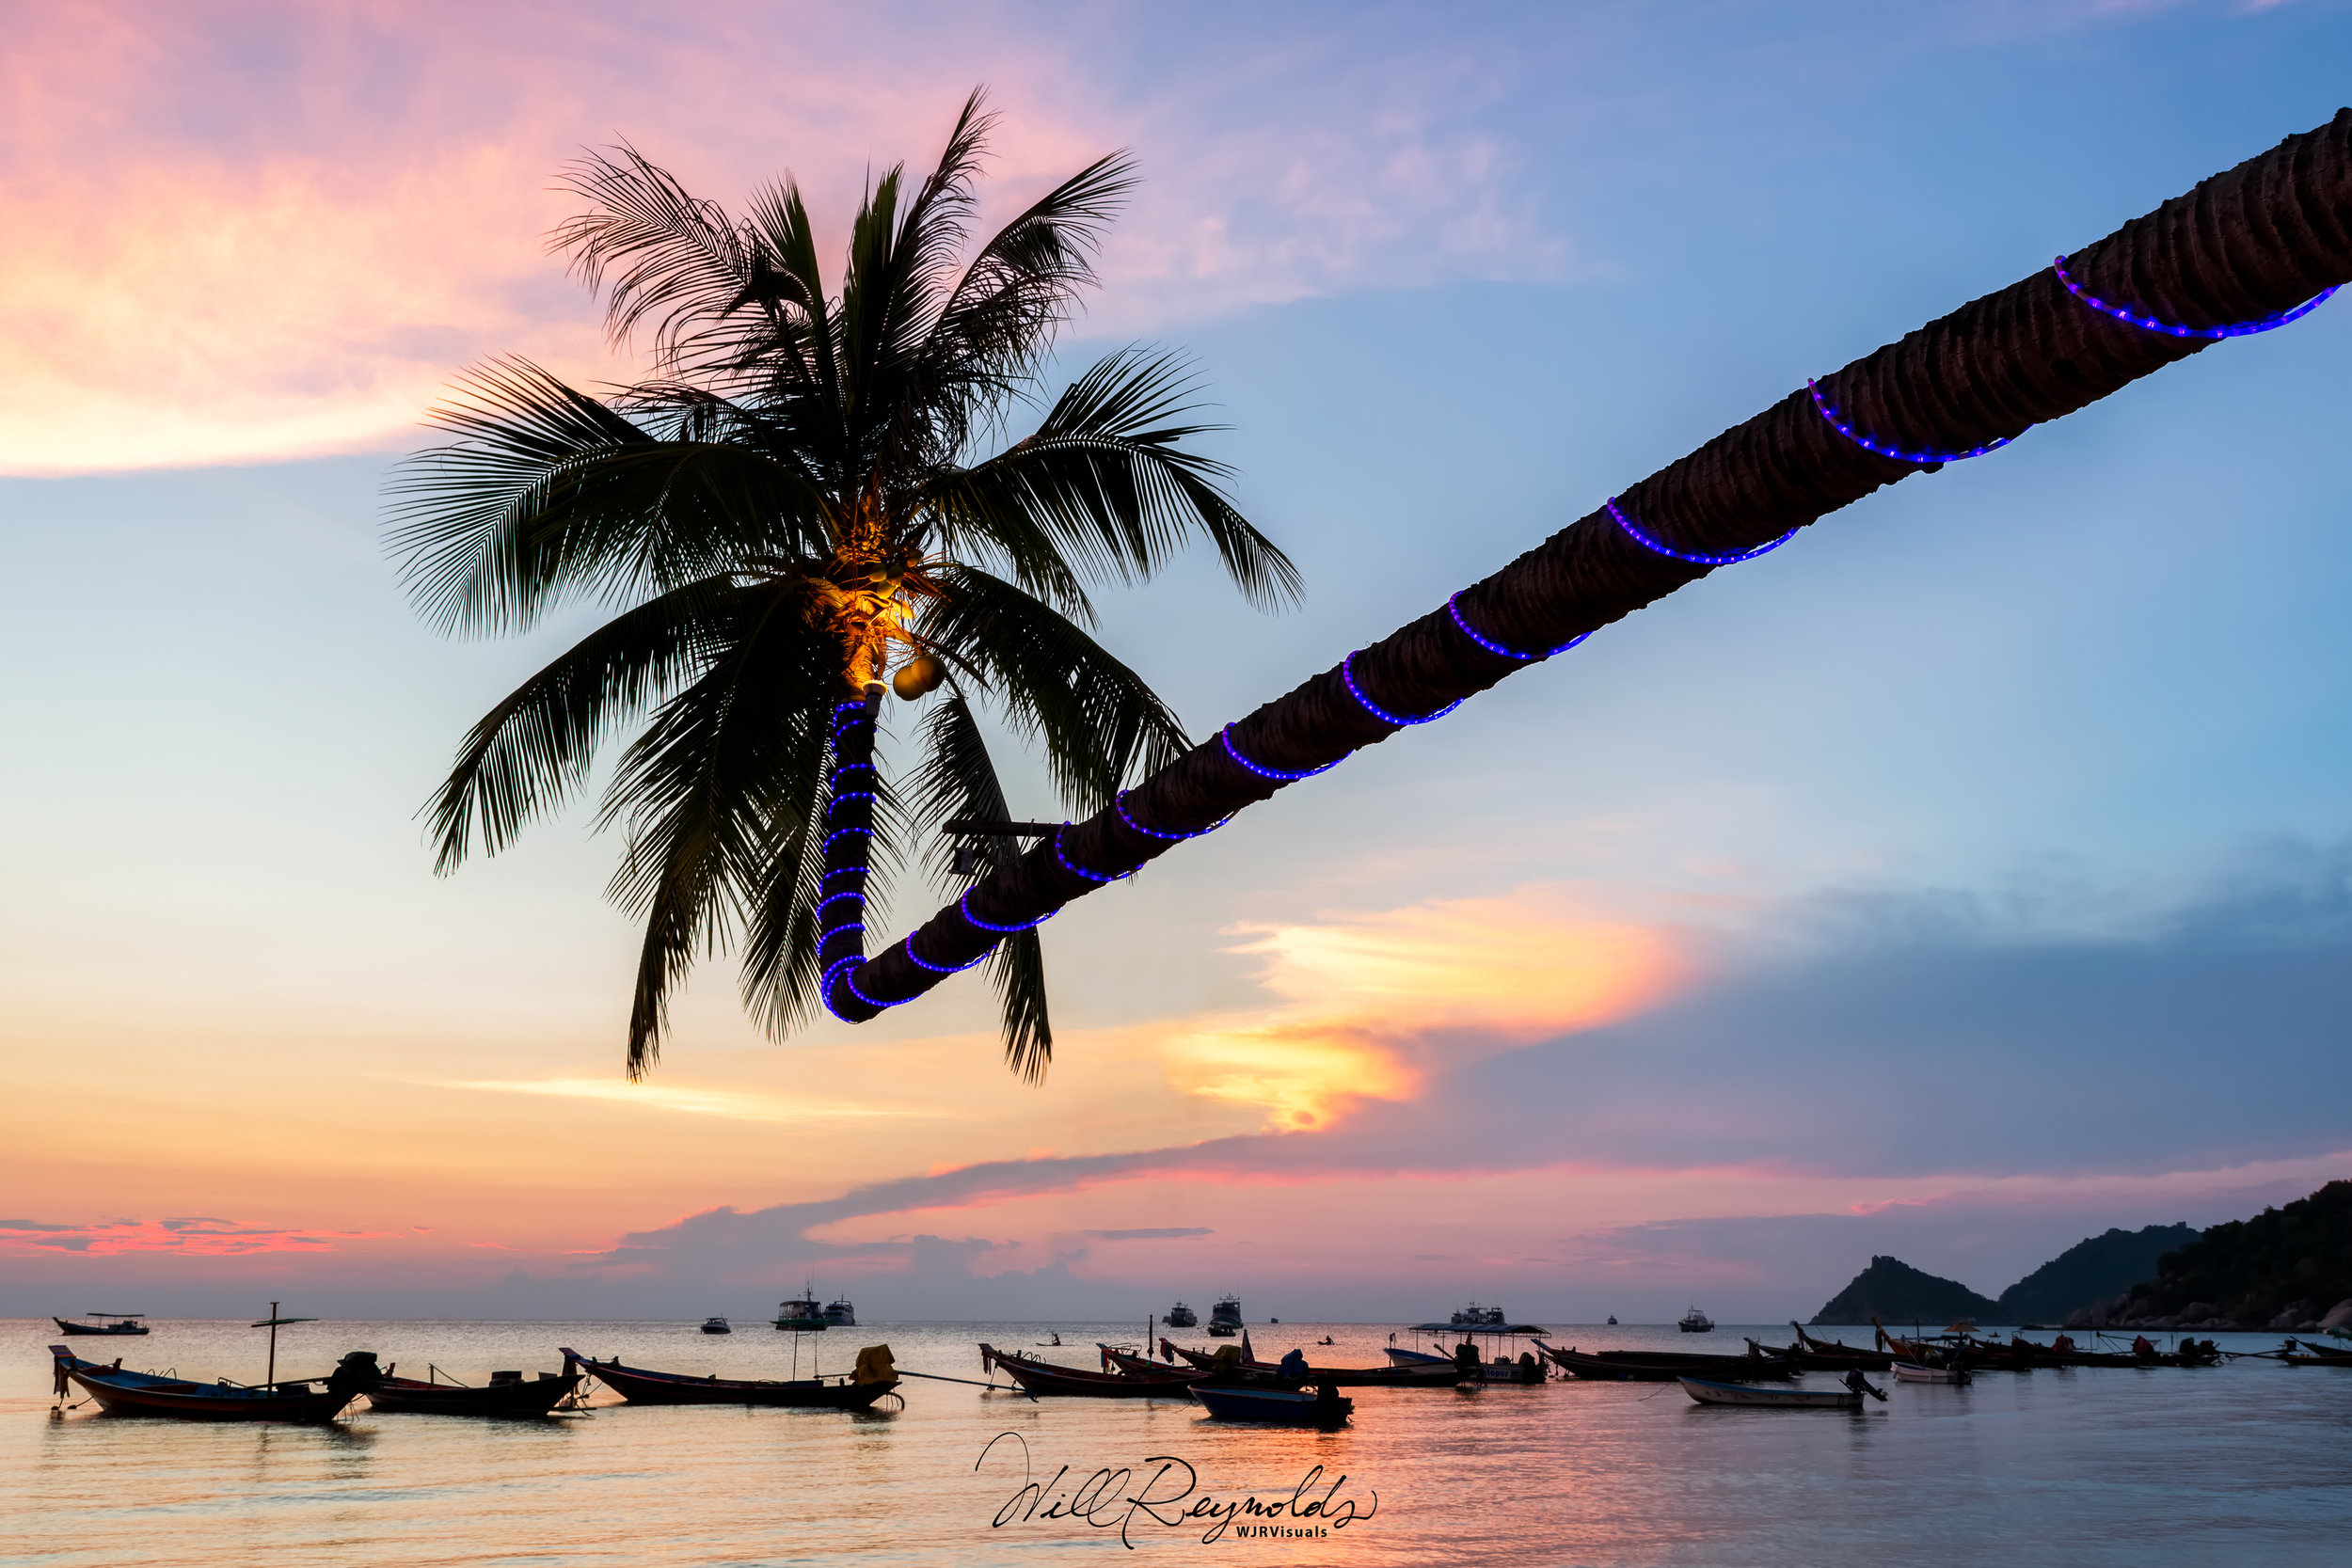 Palm tree and Long-tail boats on Koh Tao's Sairee Beach - Nikon D850 & Tamron 24-70mm f2.8 G2